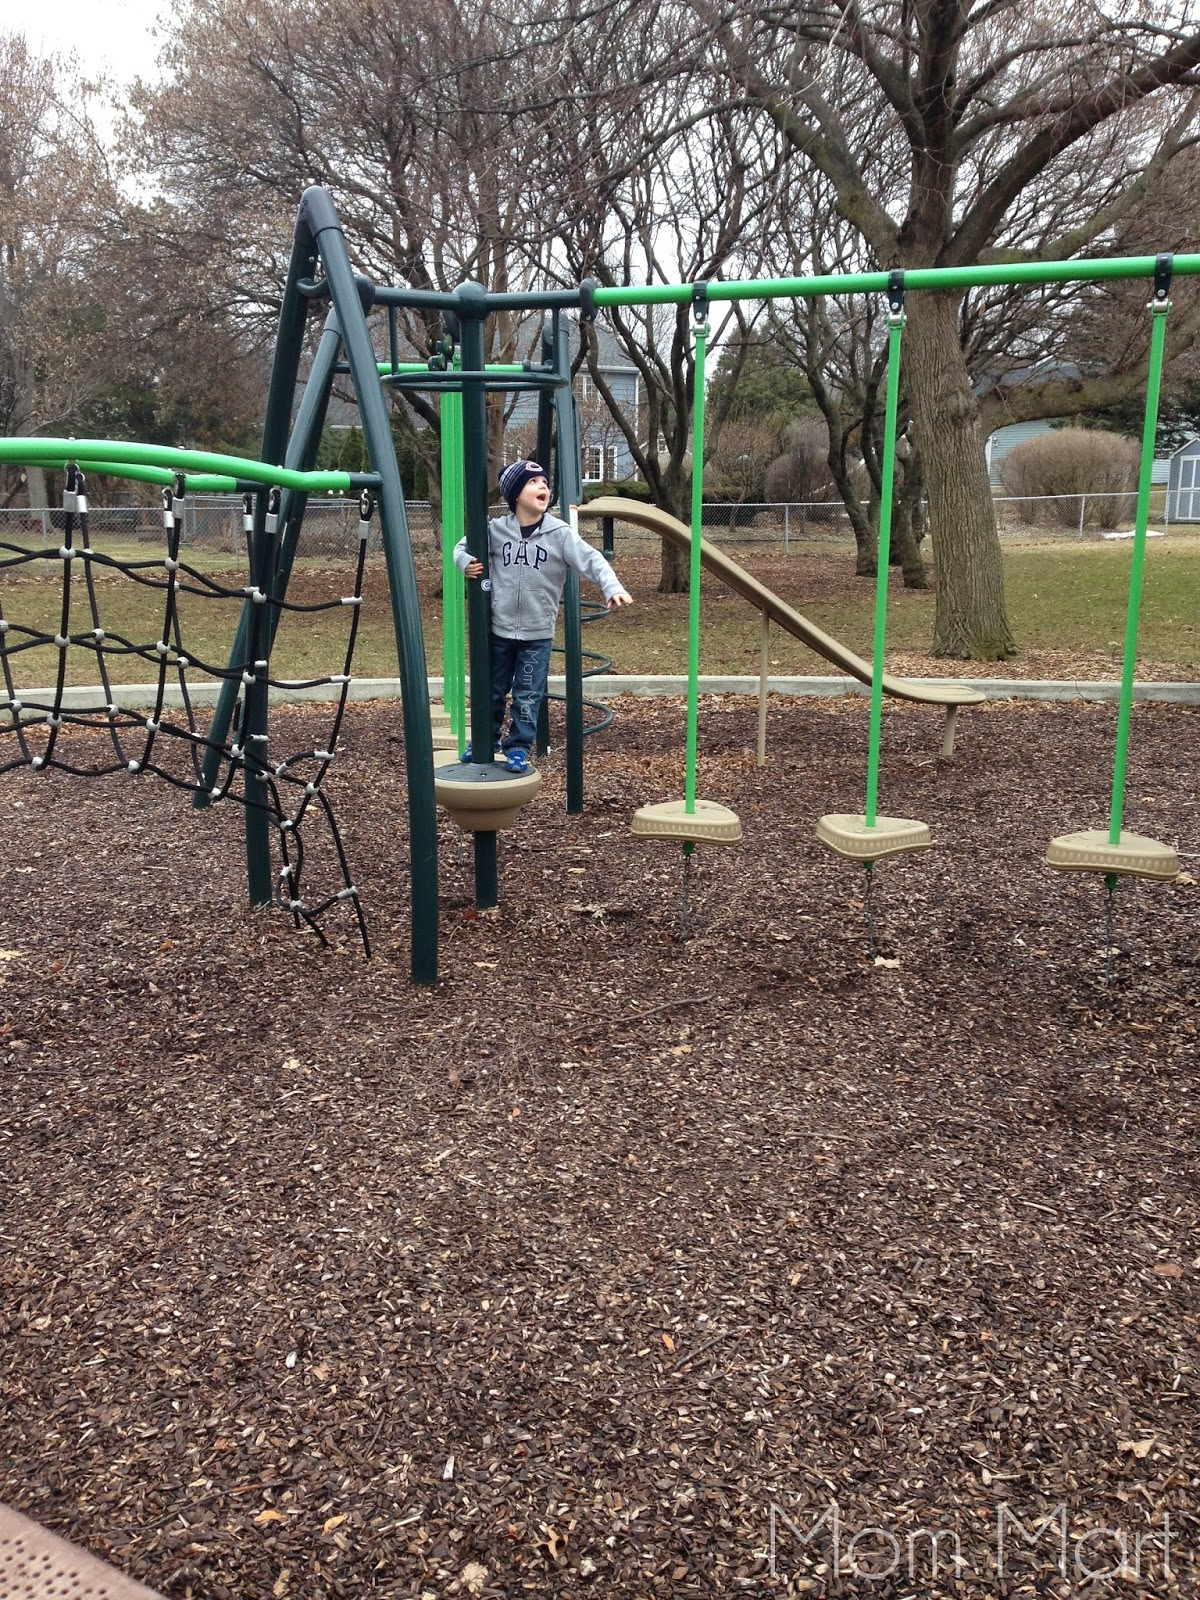 Hello Park… I've missed you  #Outdoors #PlayTime #Balance